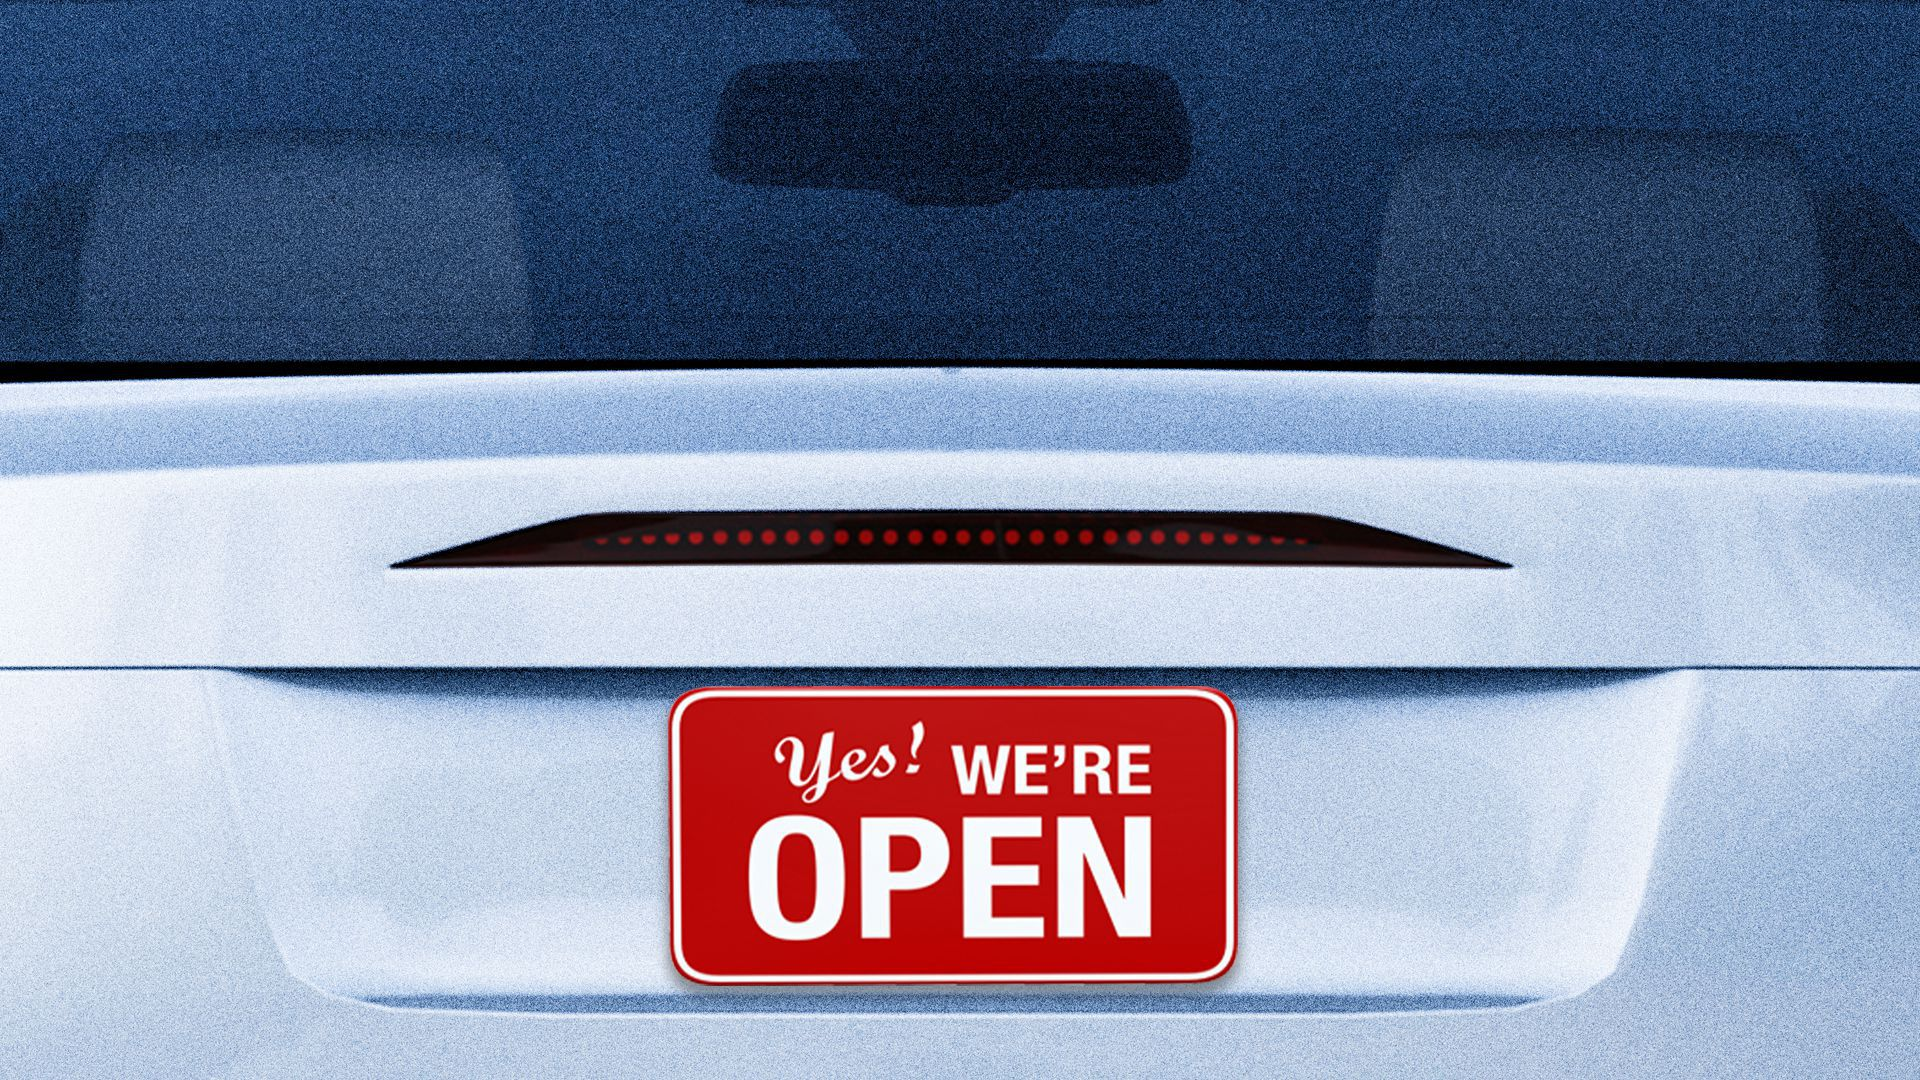 """Illustration of a car with an """"open"""" sign for a license plate"""